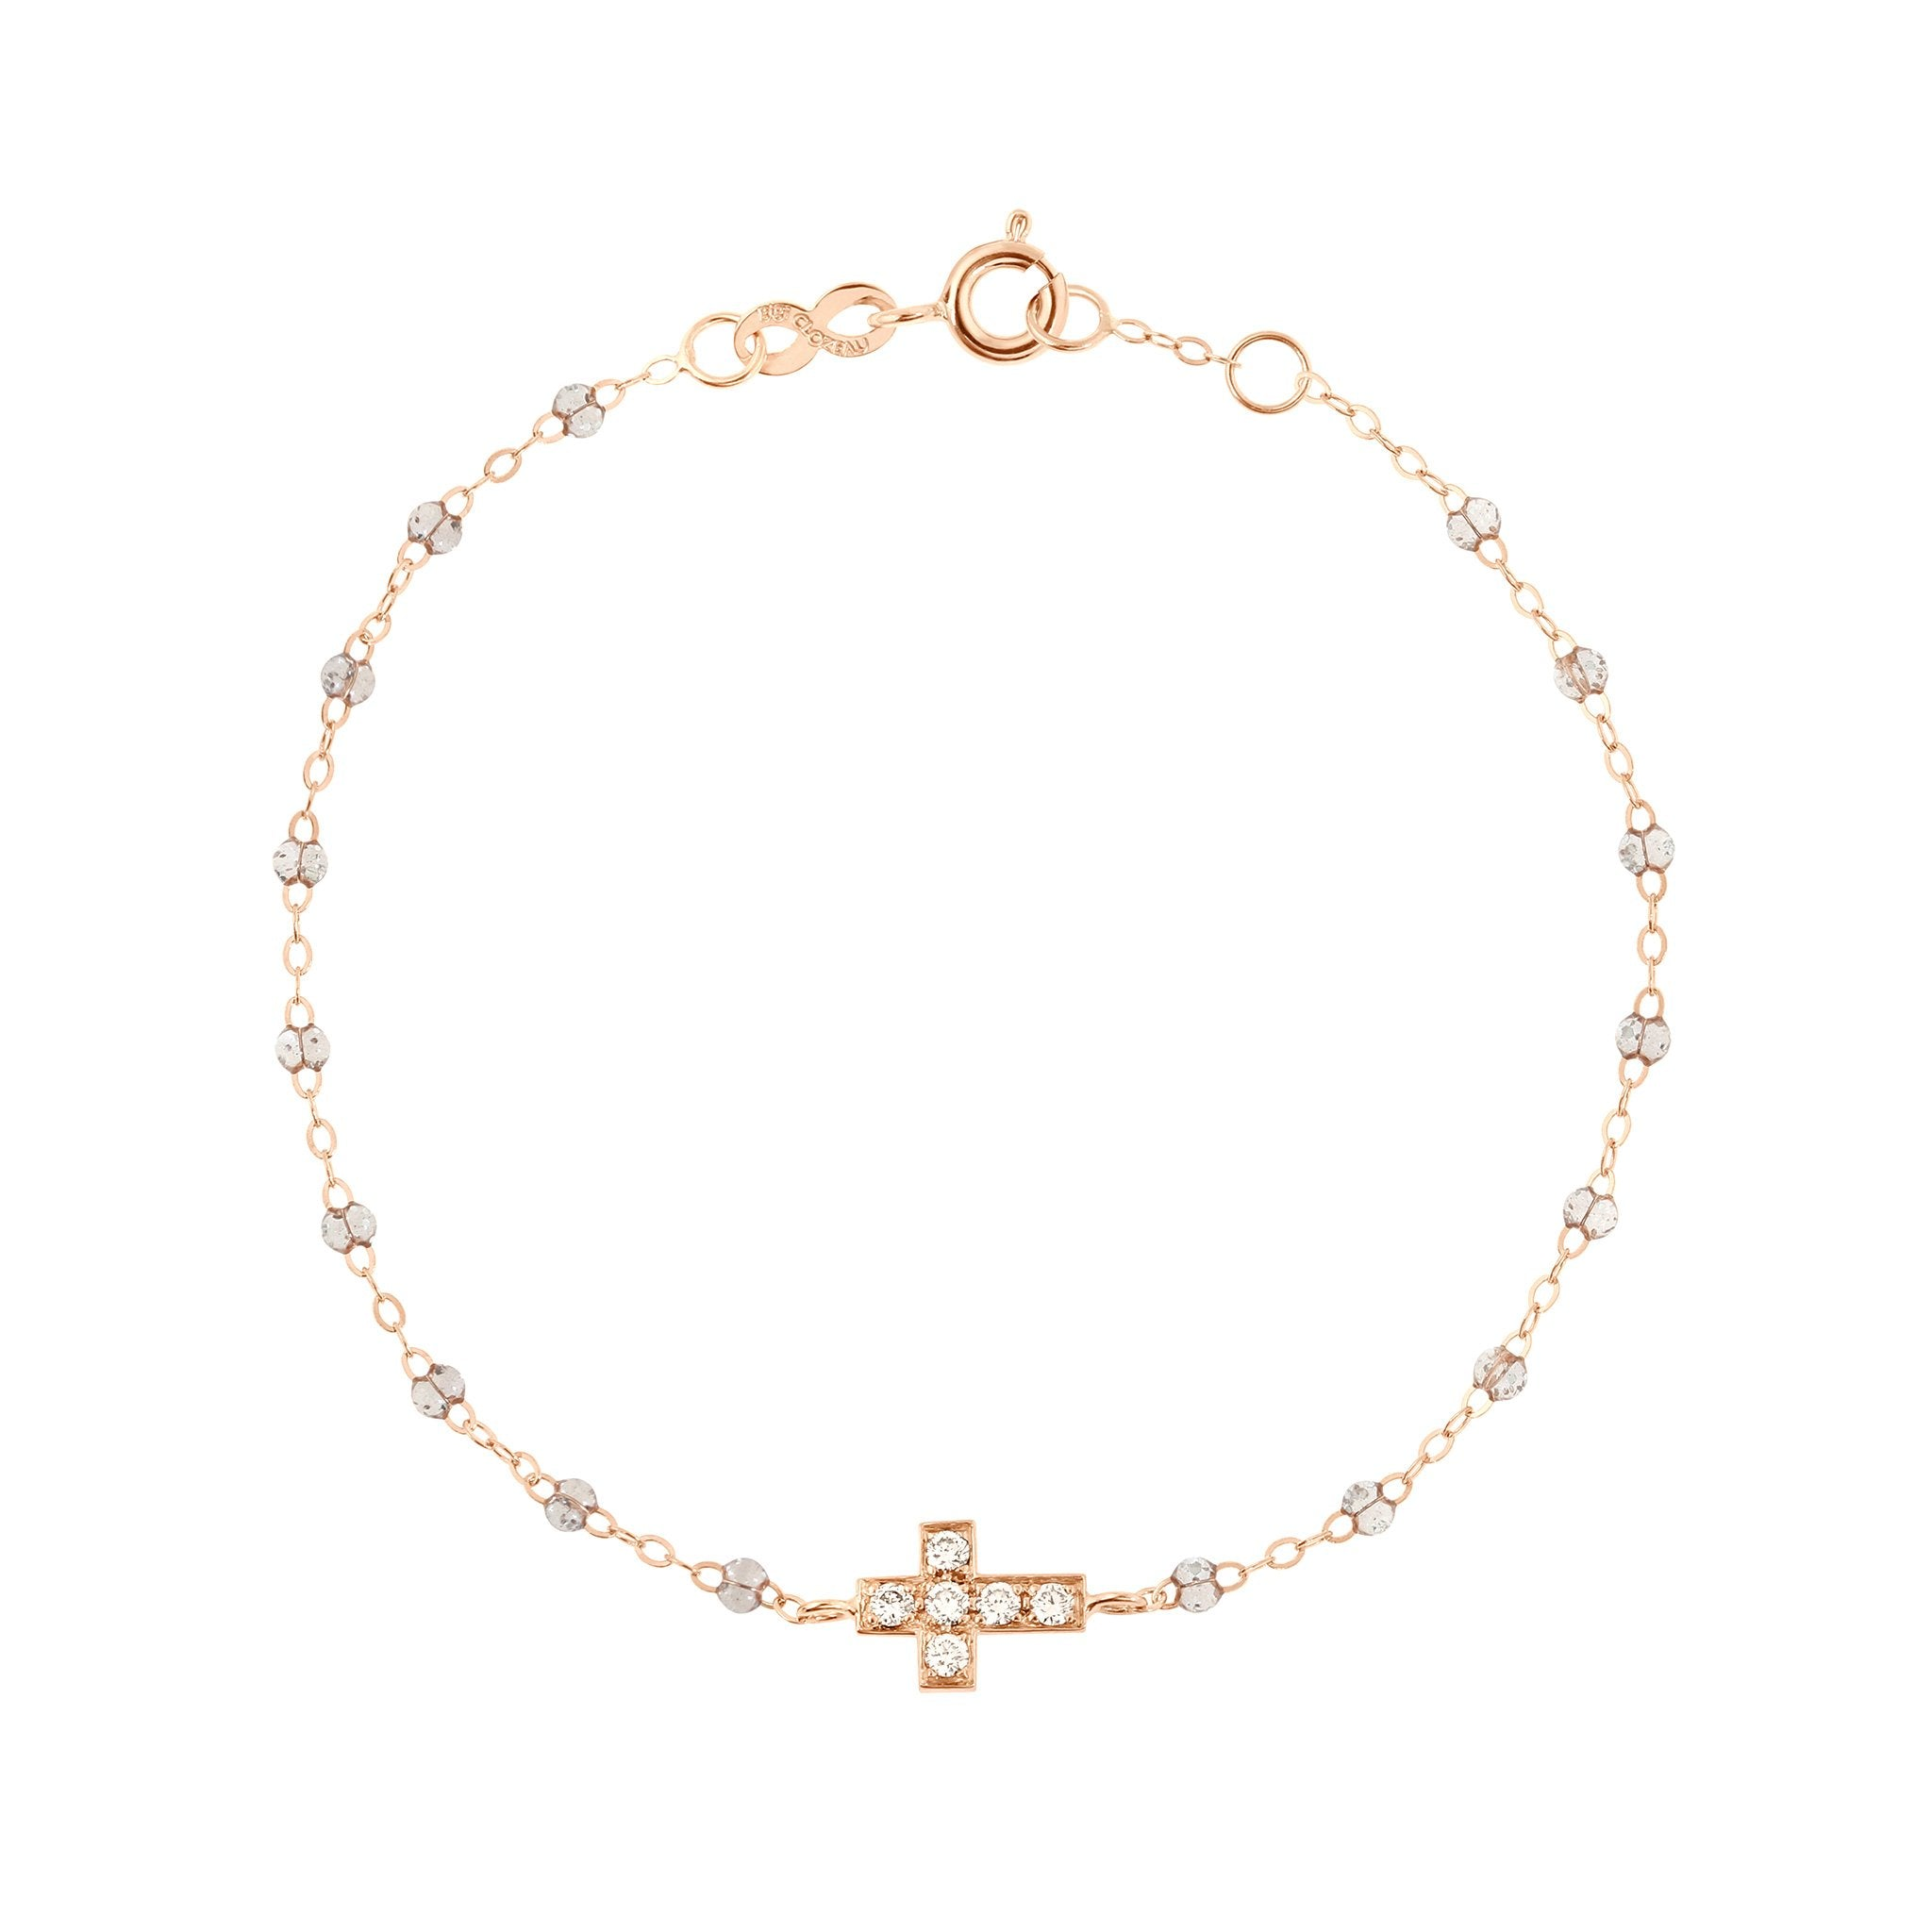 Gigi Clozeau - Cross Charm Classic Gigi Sparkle diamonds bracelet, Rose Gold, 6.7